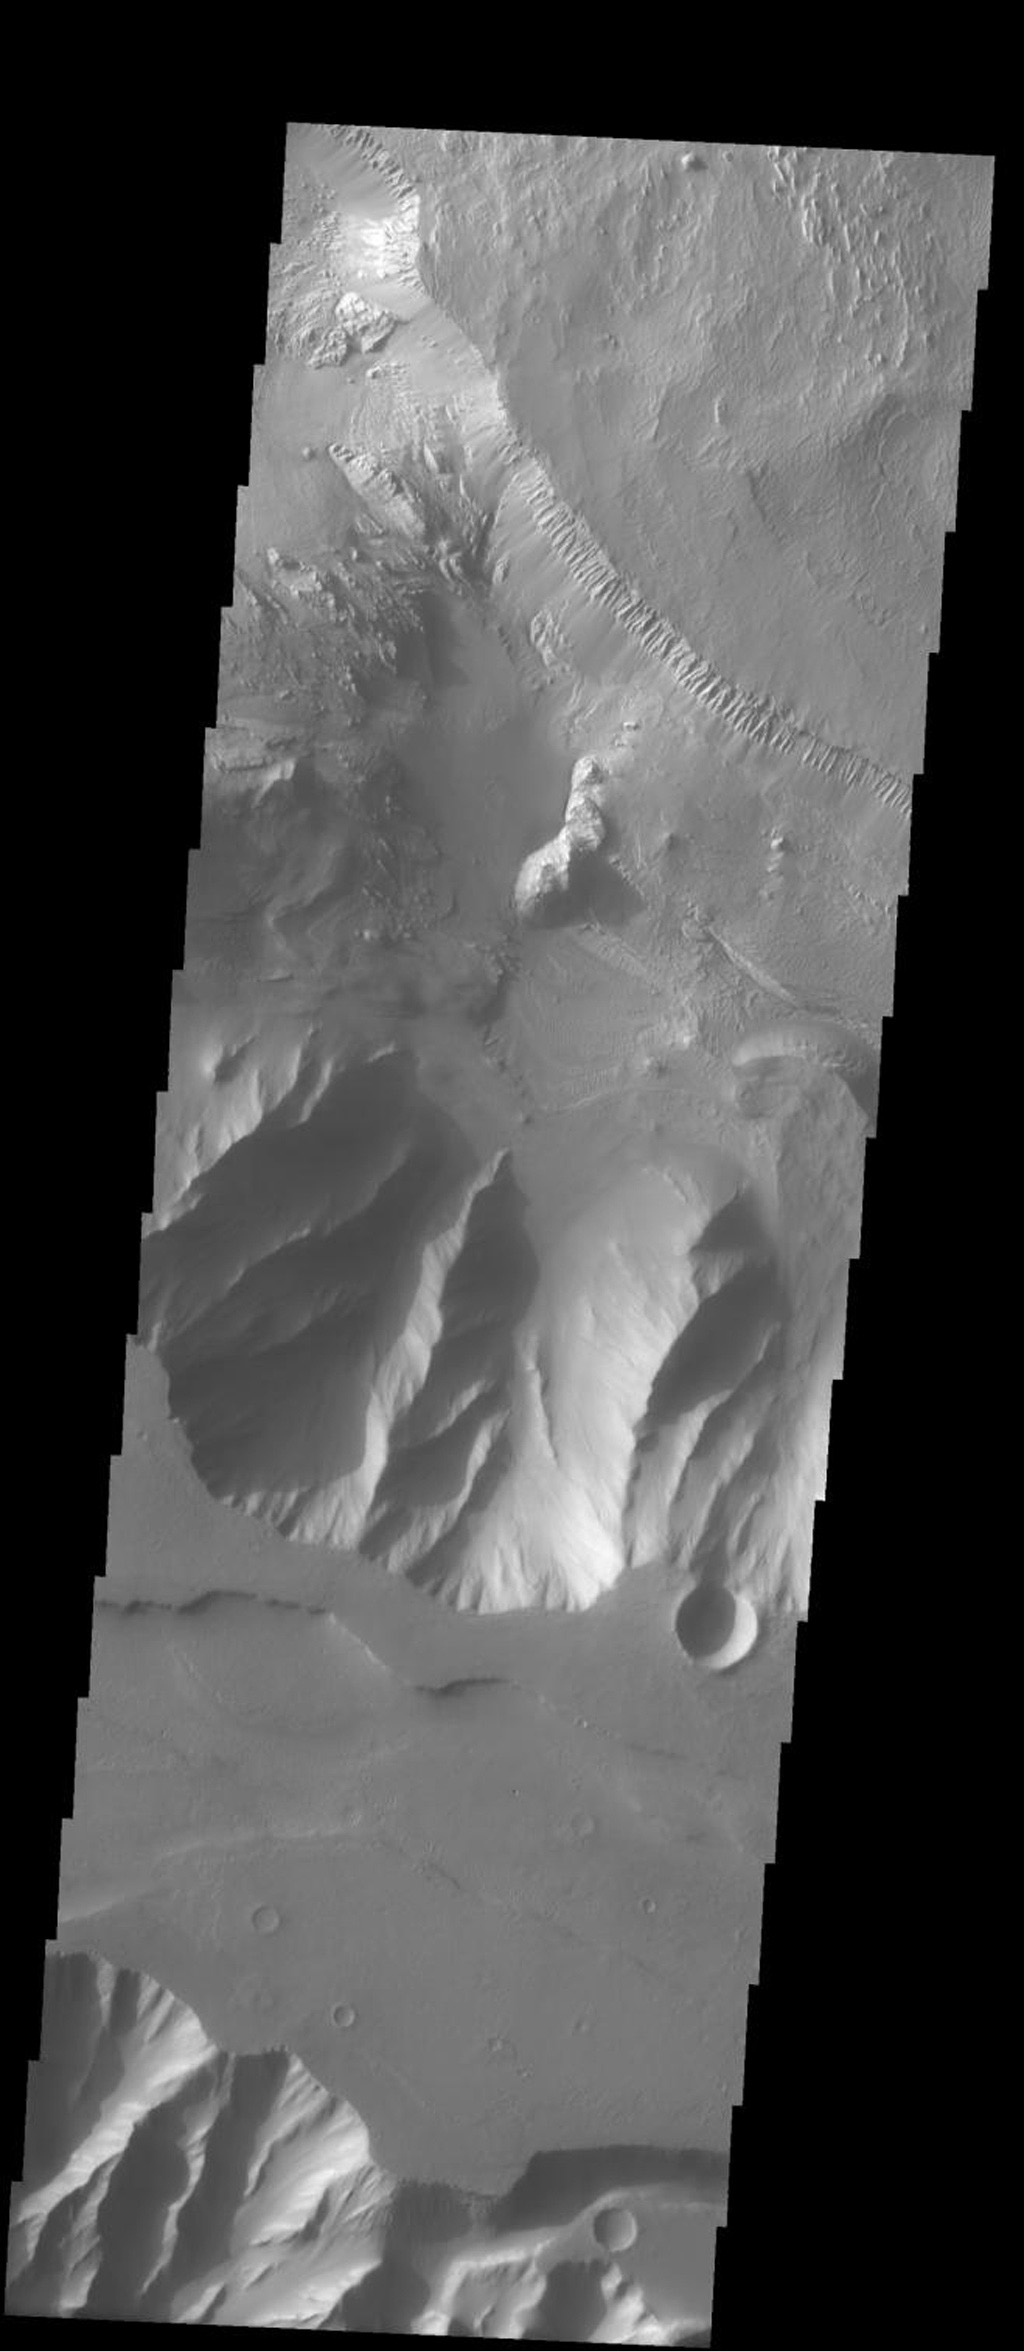 This image released on Sept 21, 2004 from NASA's 2001 Mars Odyssey shows the bordering areas between Ophir Chasma and Candor Chasma on Mars. Wind etched surfaces, and dunes are present on the floor of Ophir Chasma.